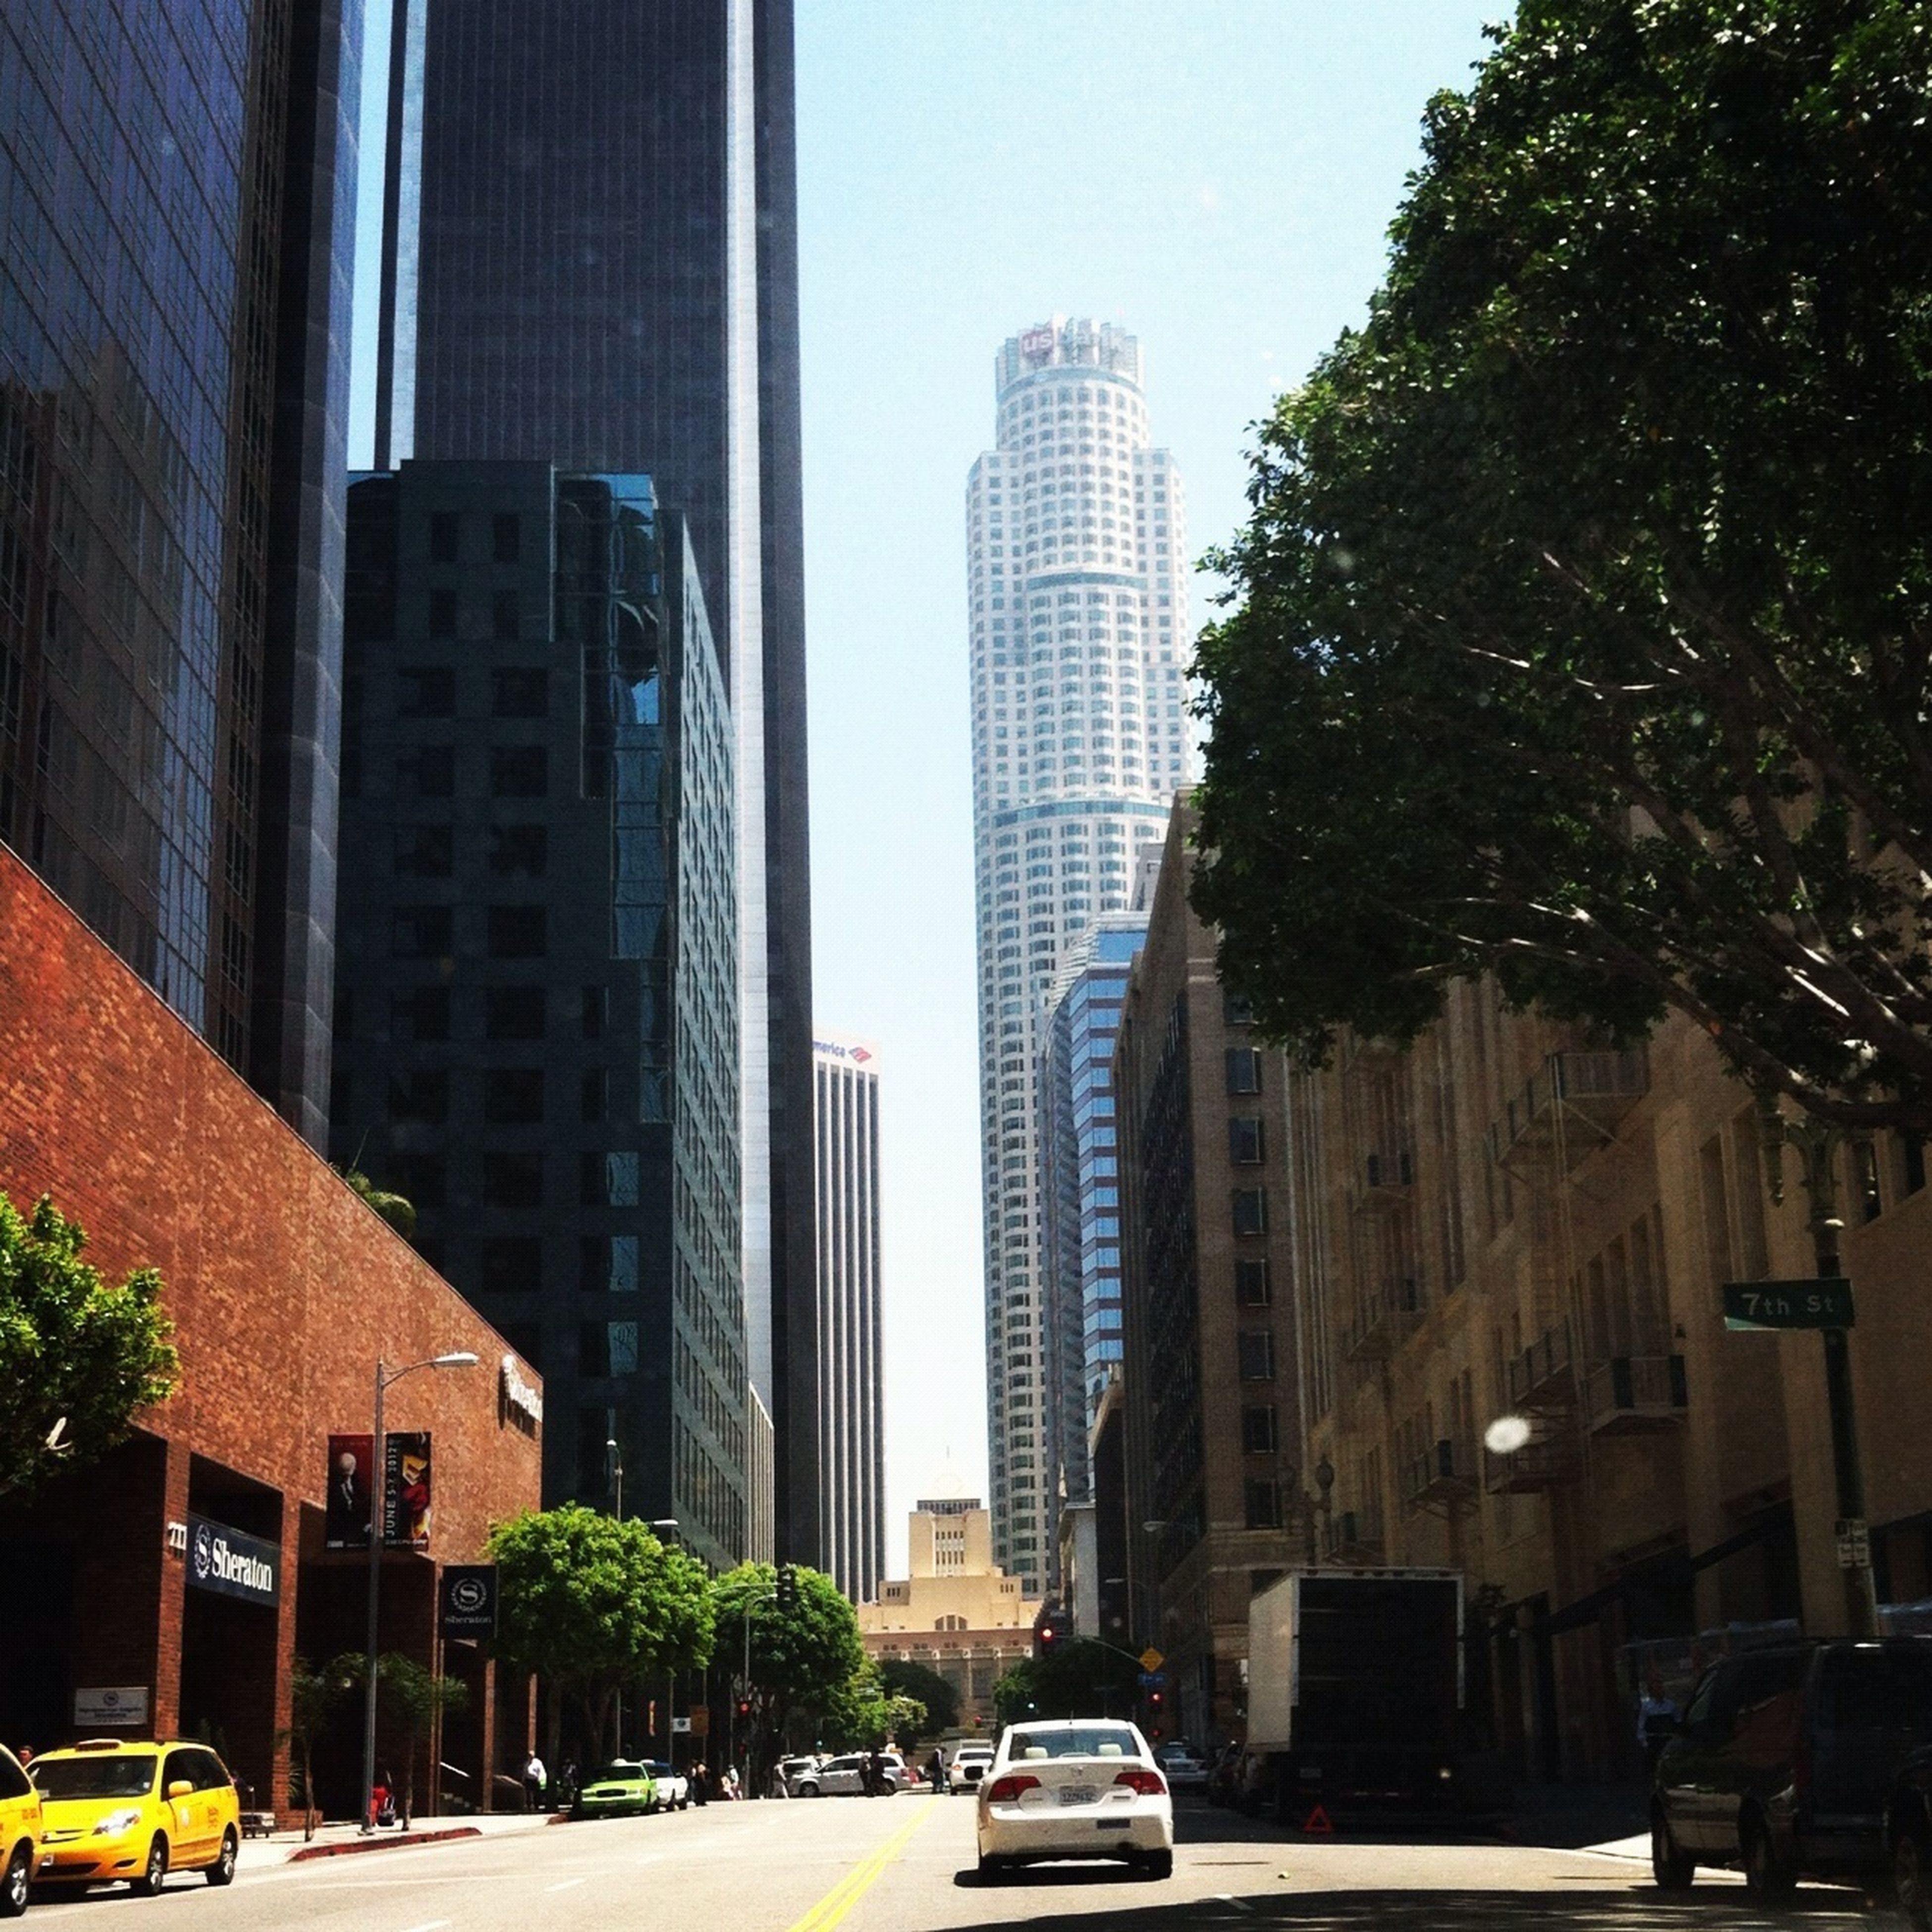 building exterior, architecture, built structure, city, car, transportation, land vehicle, skyscraper, mode of transport, street, office building, road, modern, tall - high, tower, city life, building, traffic, tree, city street